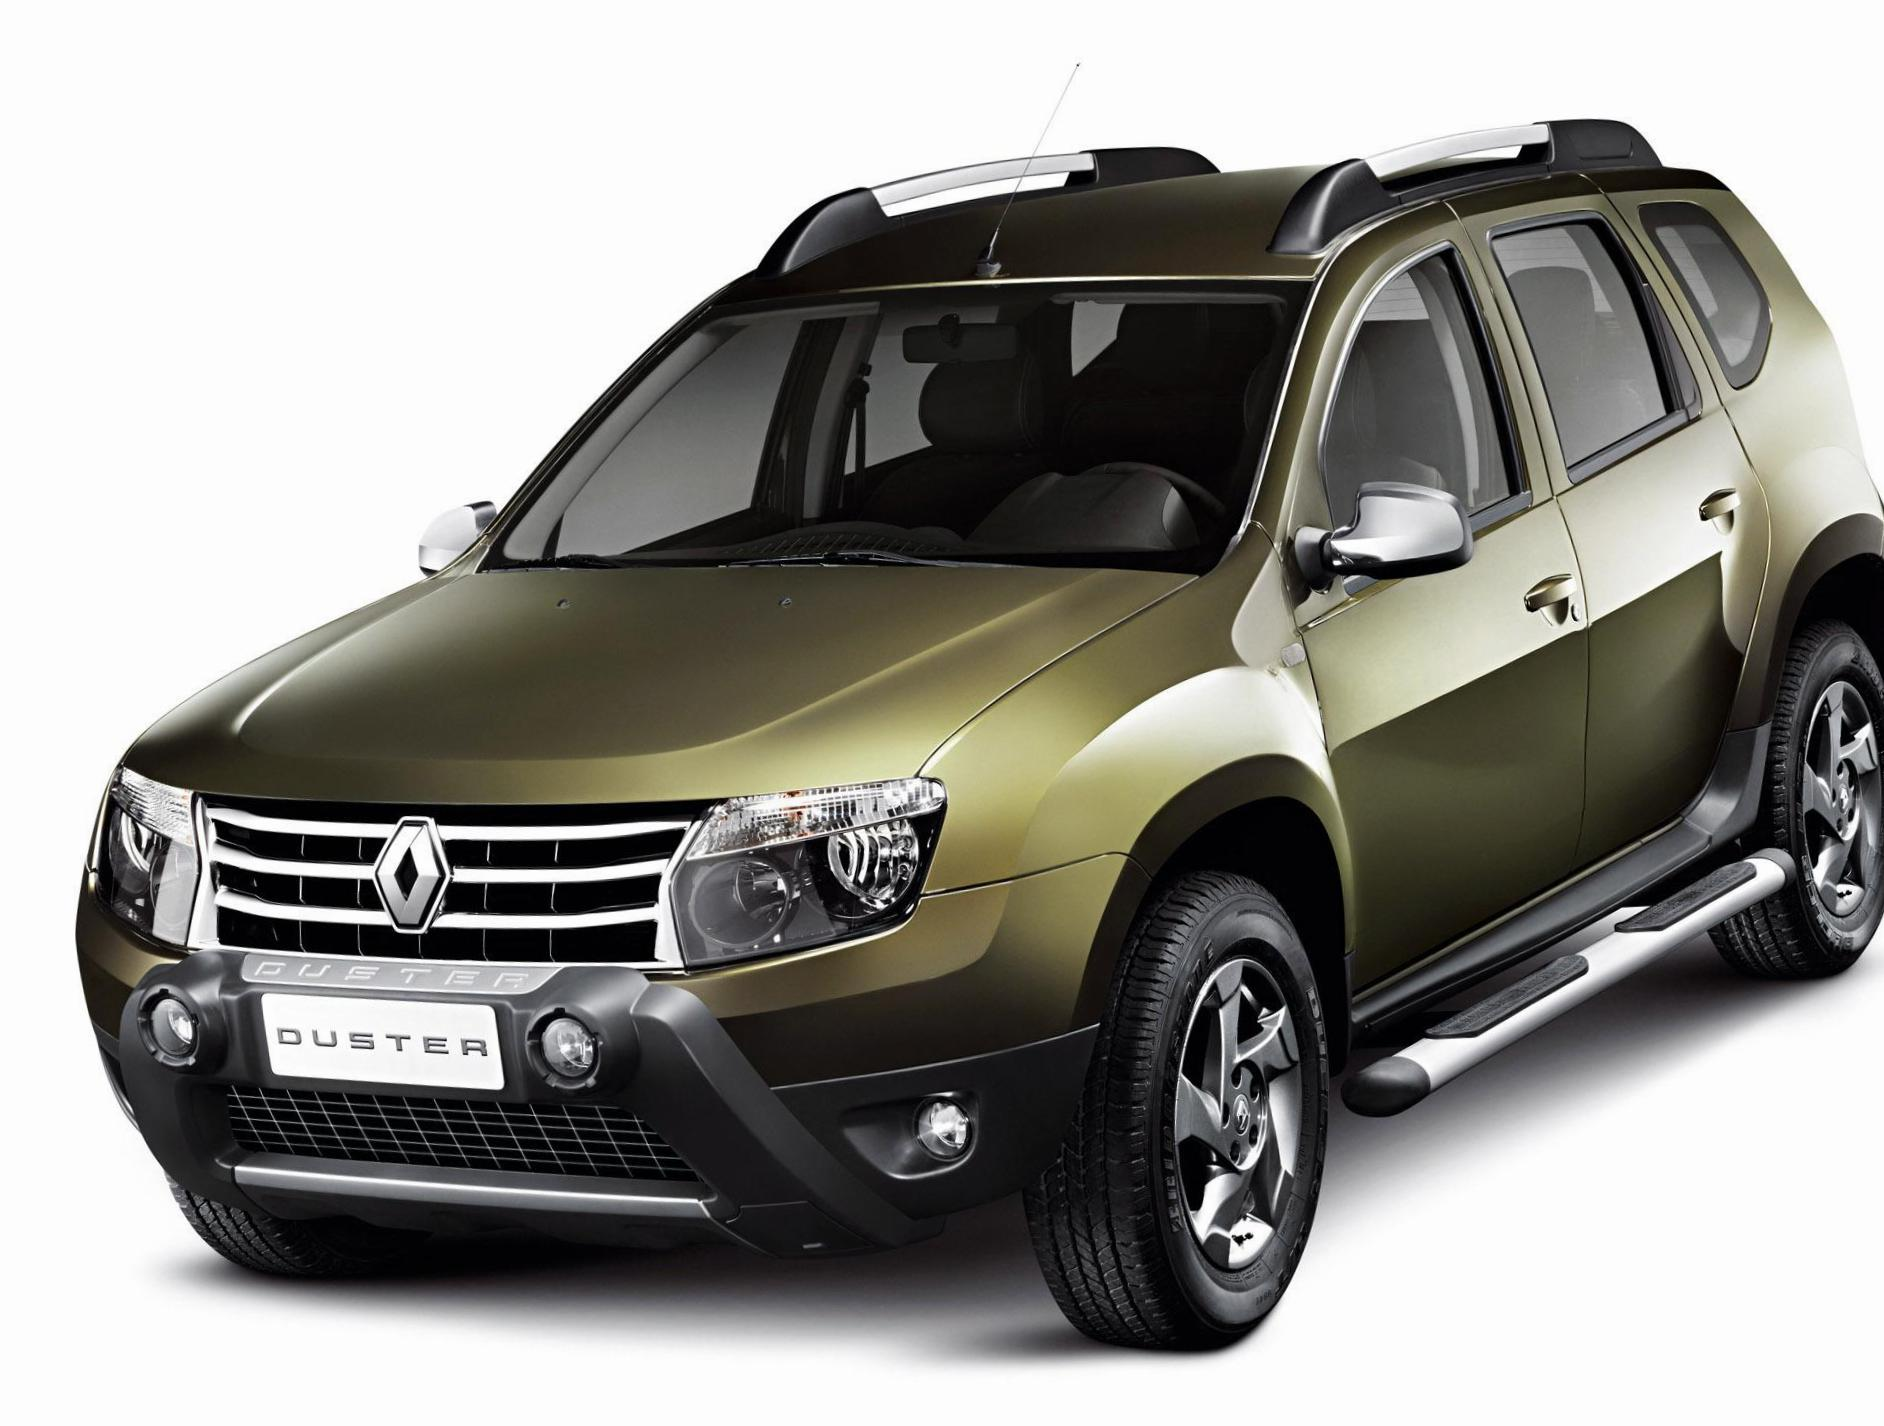 Duster Renault sale 2012